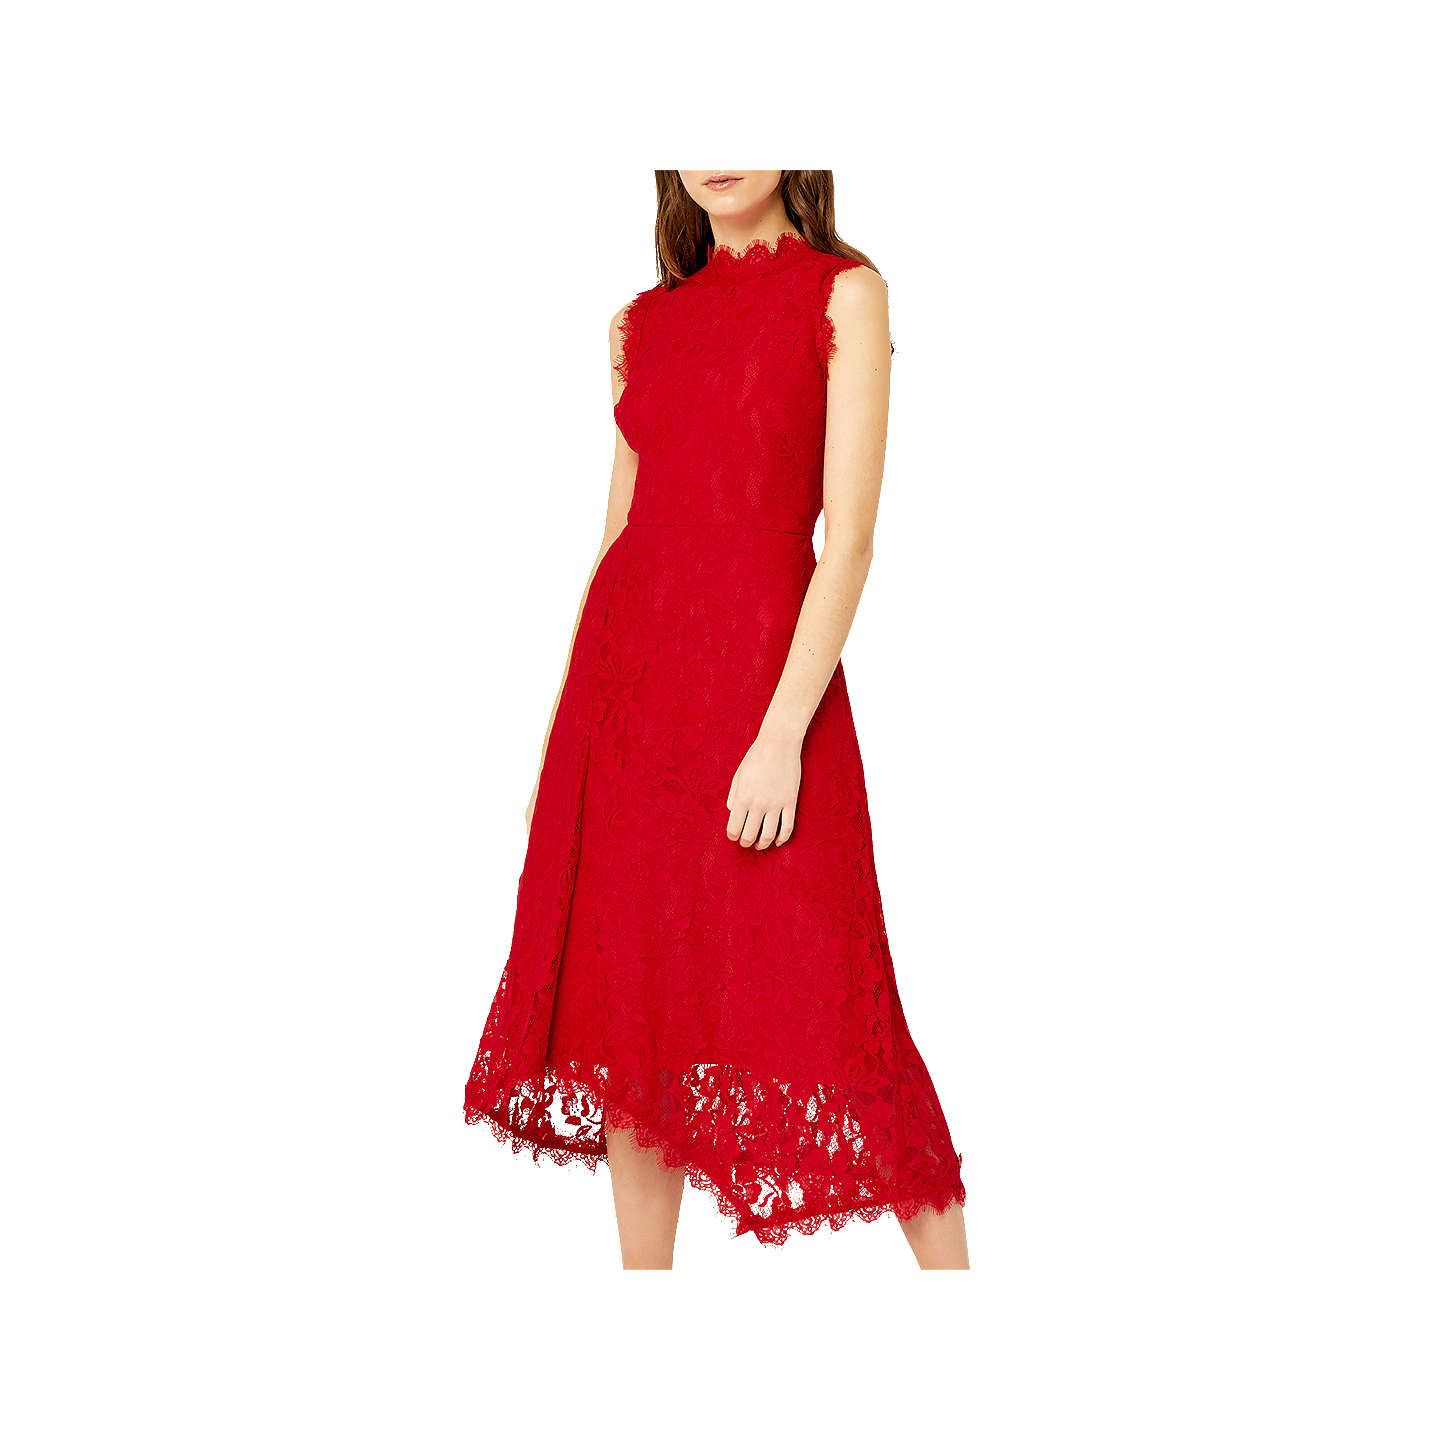 Warehouse tiered lace dress yellow  Warehouse Sleeveless Lace Midi Dress Bright Red  Lace midi dress